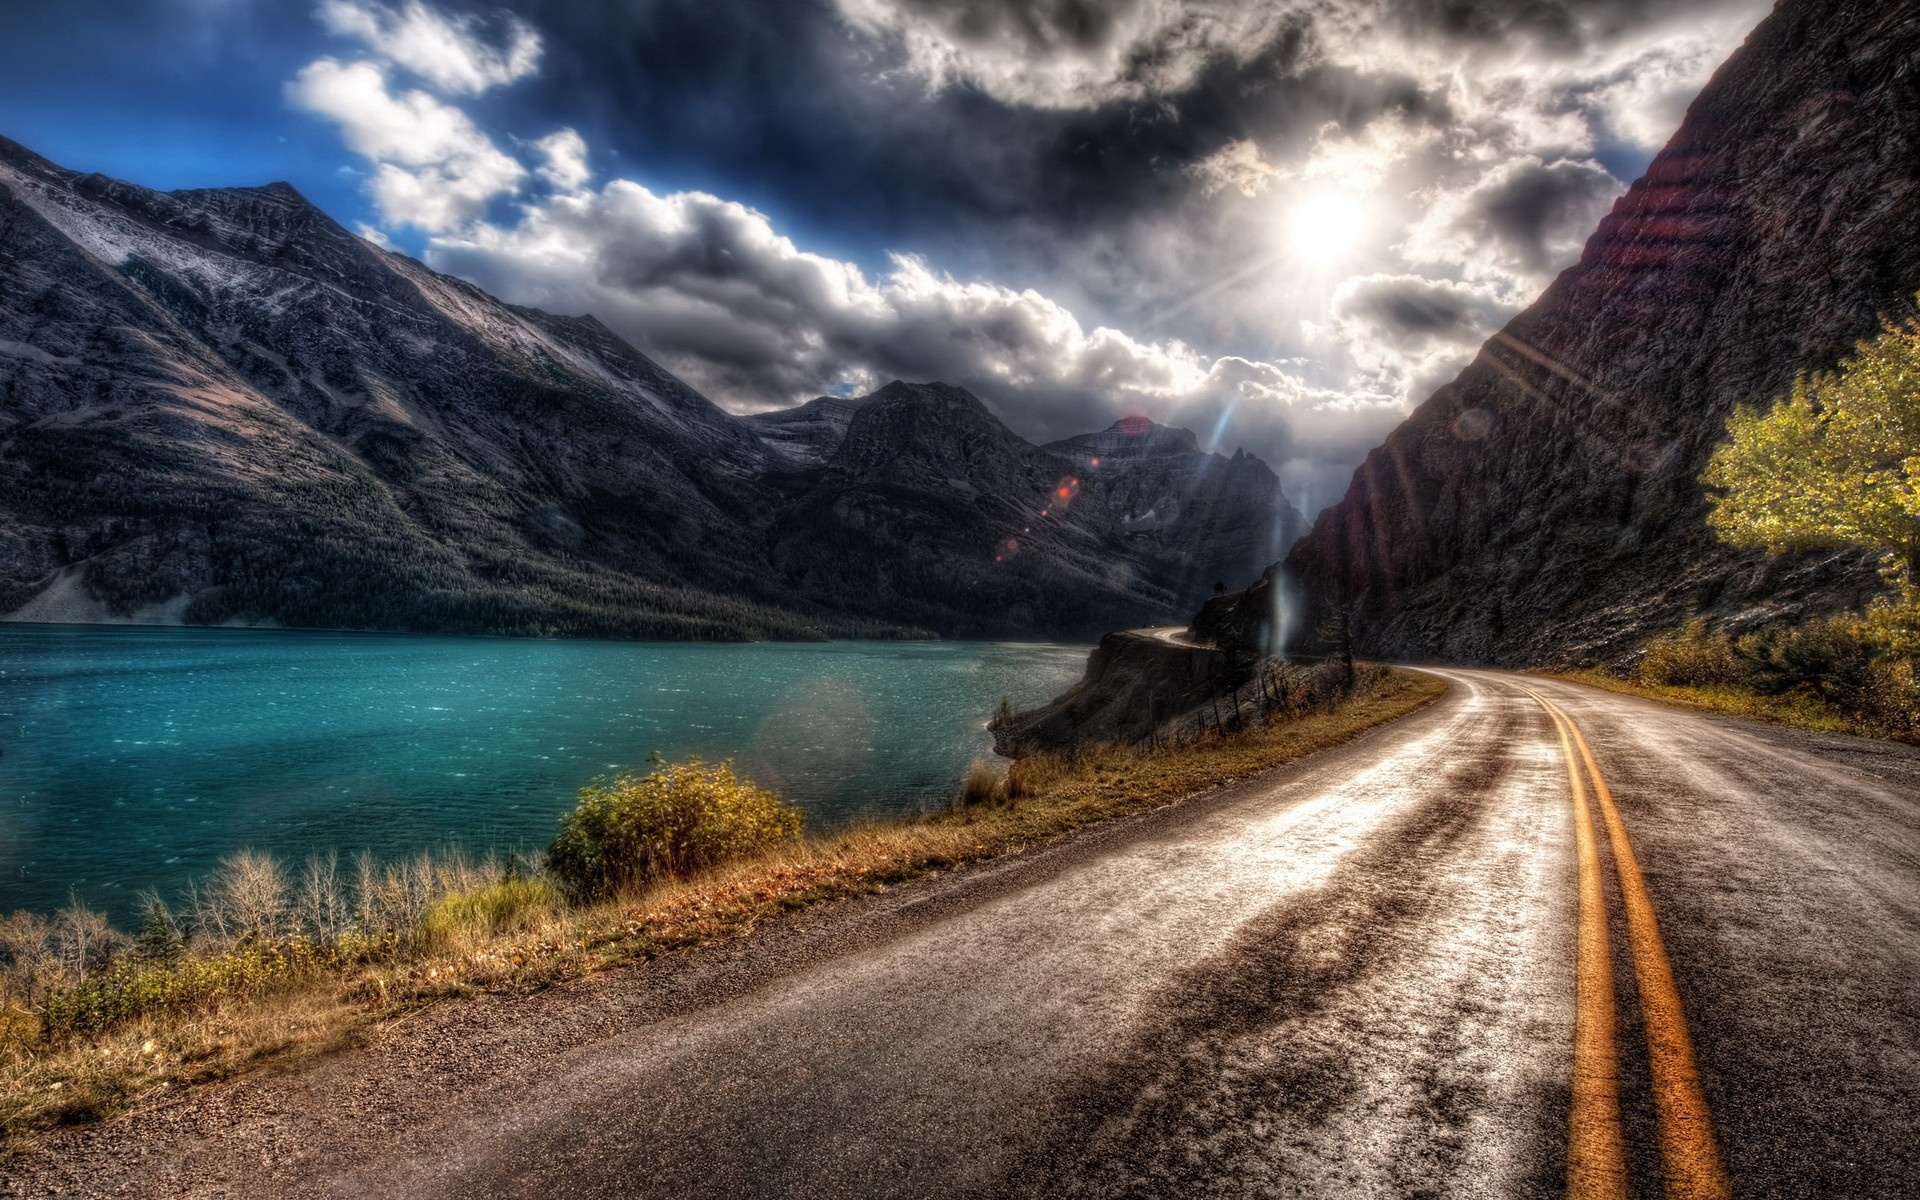 Mountain Road Wallpapers